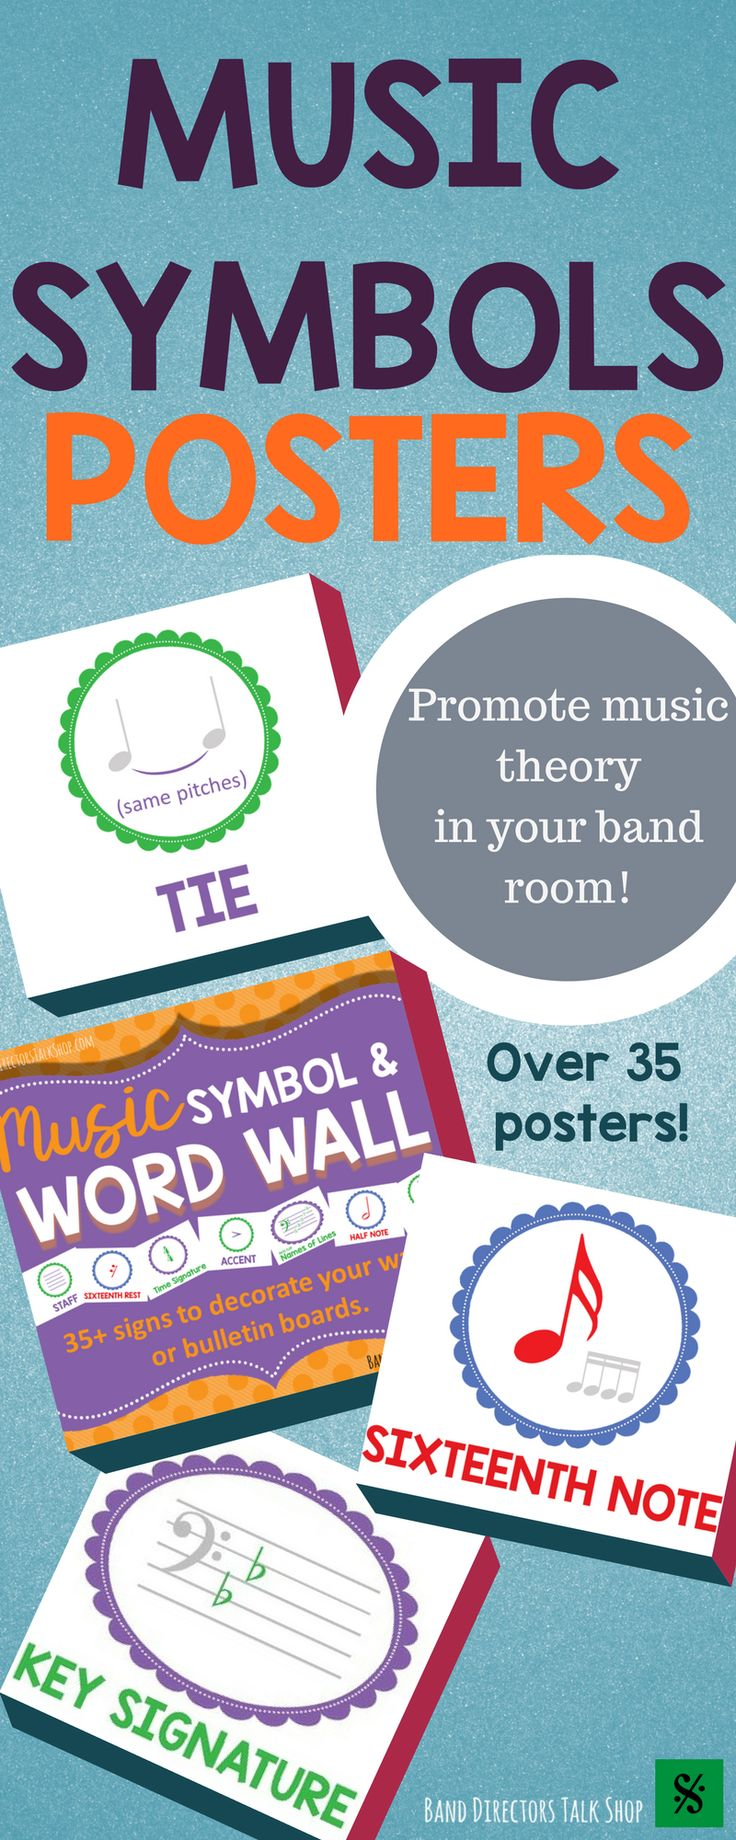 """$5.00 Music symbols word wall! Visit """"Band Directors Talk Shop"""" on Teachers Pay Teachers for band lesson plans, band games, band activities, beginning band ideas, band bulletin board sets, rhythm games, note name games, music word walls, practice reports, rehearsal techniques, woodwind, brass and percussion instrument care, band teaching strategies, motivational quotes and more!"""